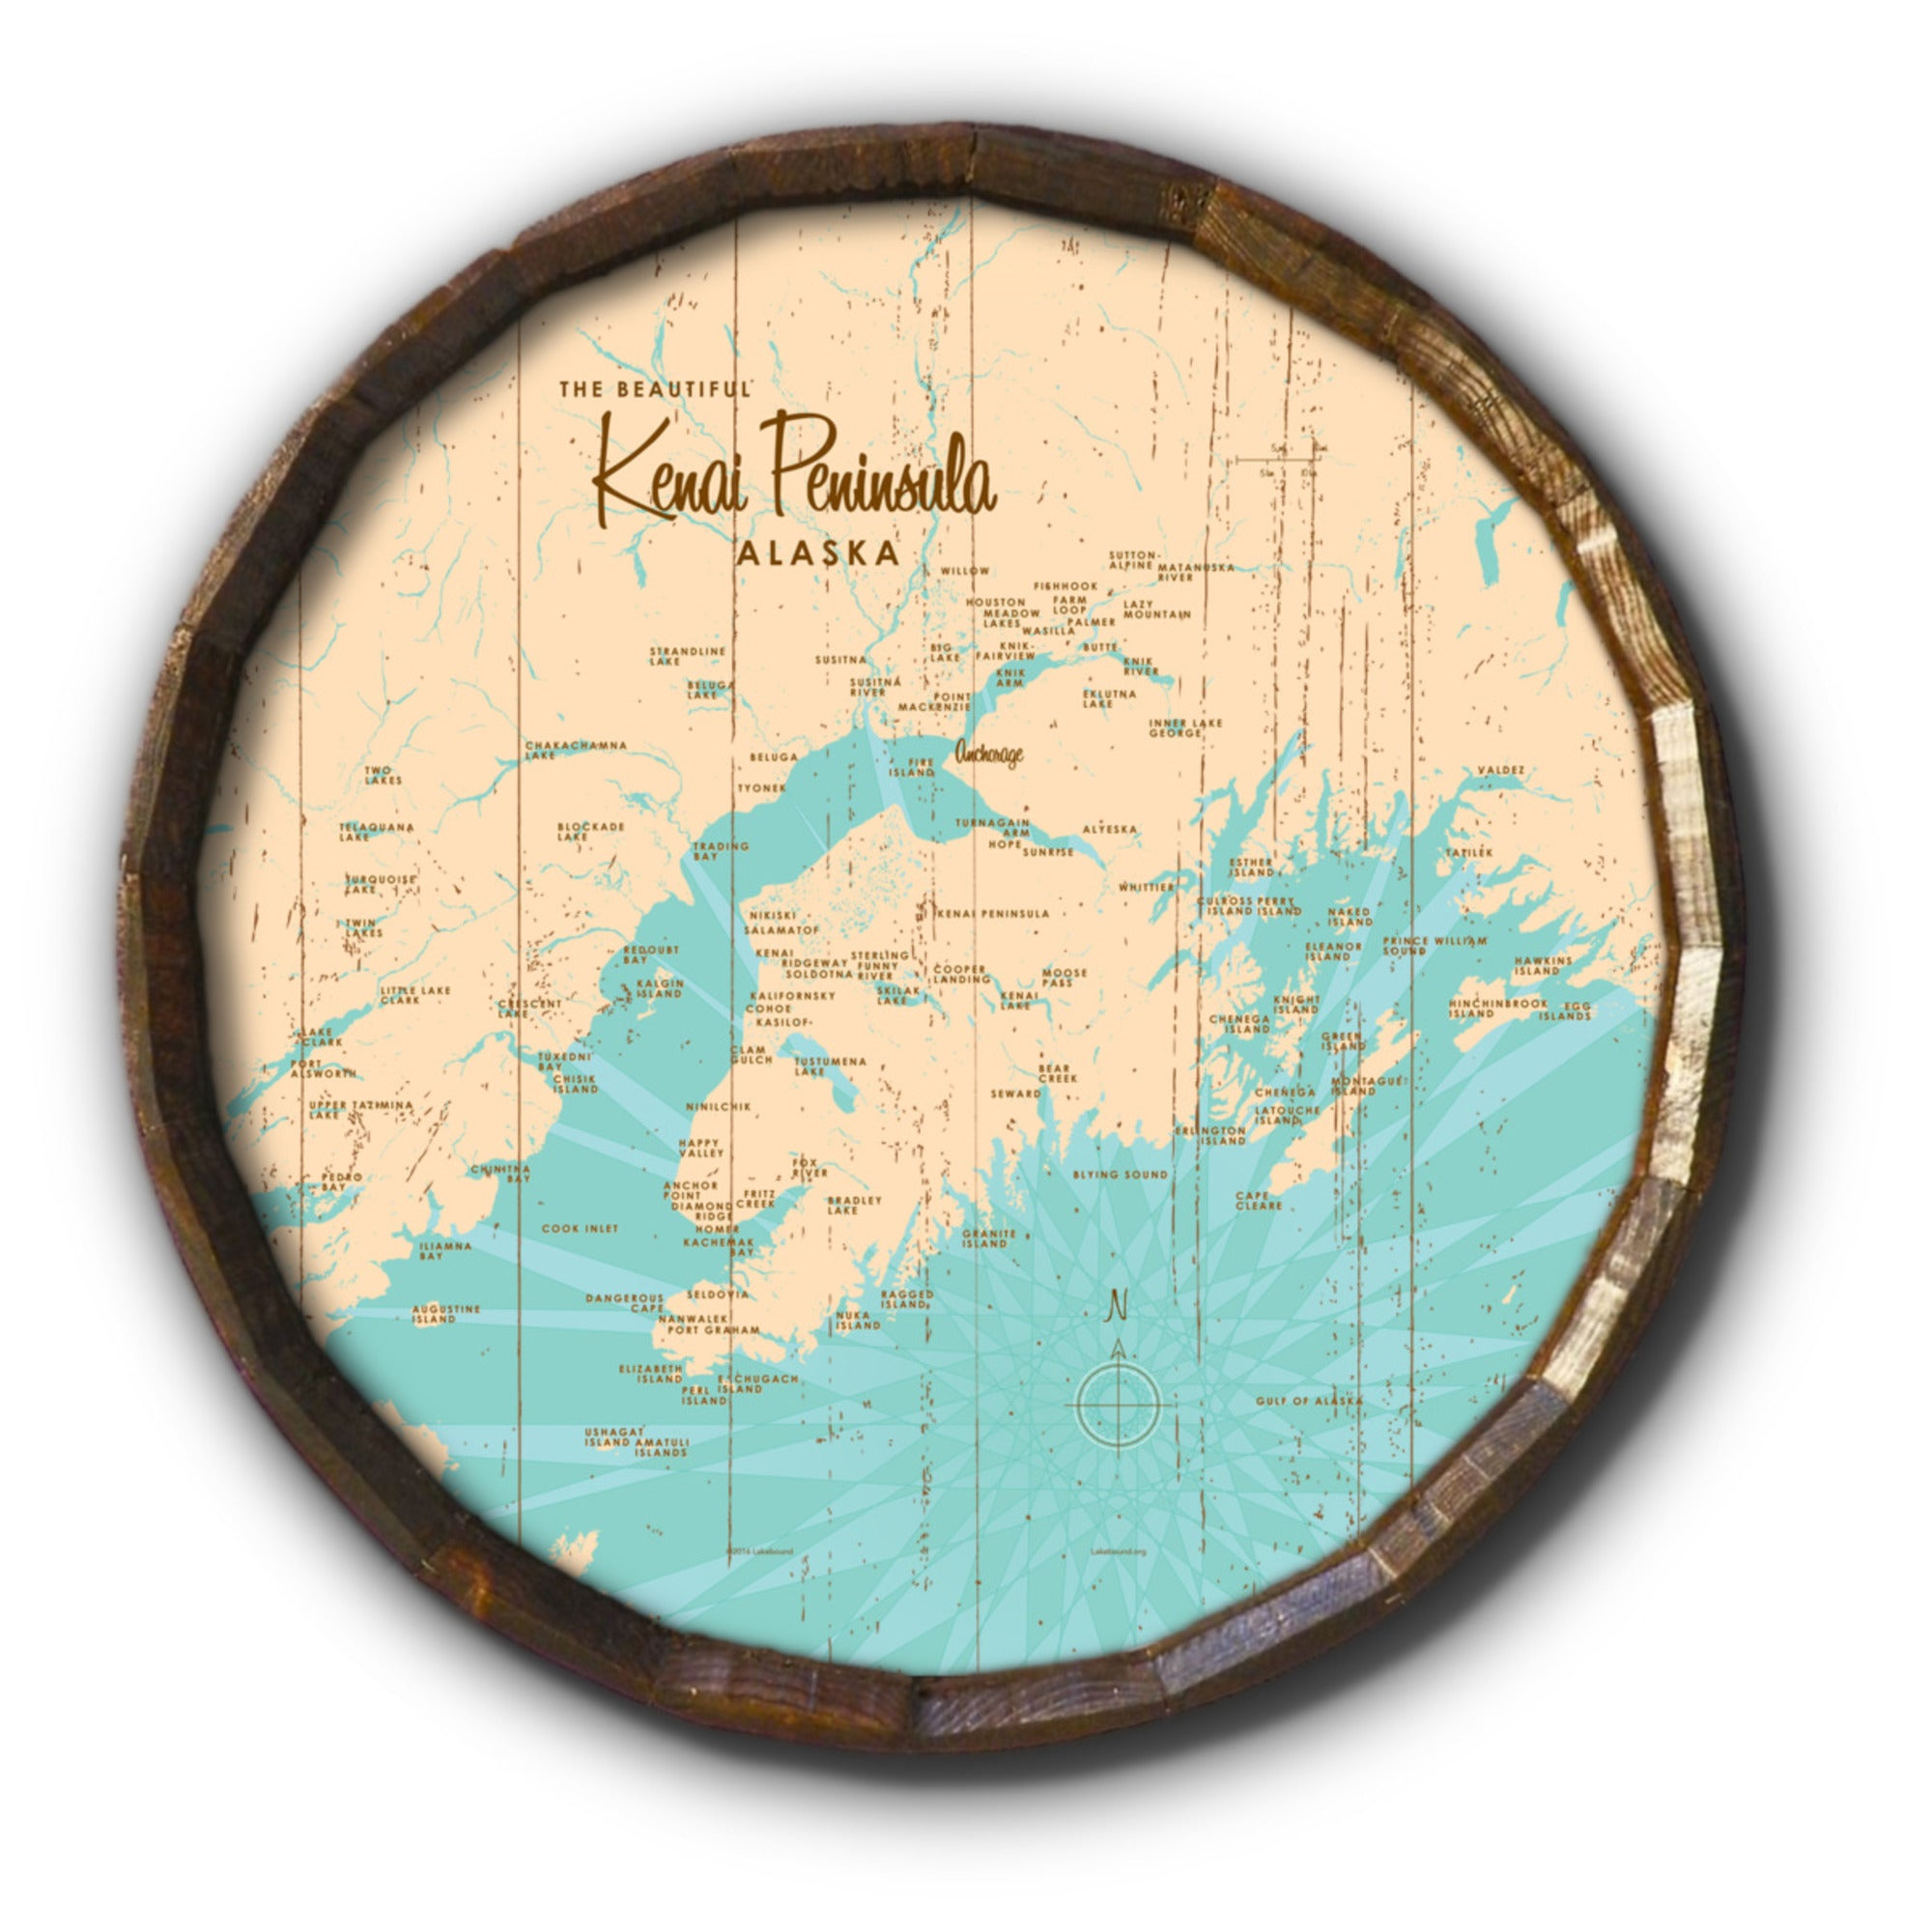 Kenai Peninsula Alaska, Rustic Barrel End Map Art